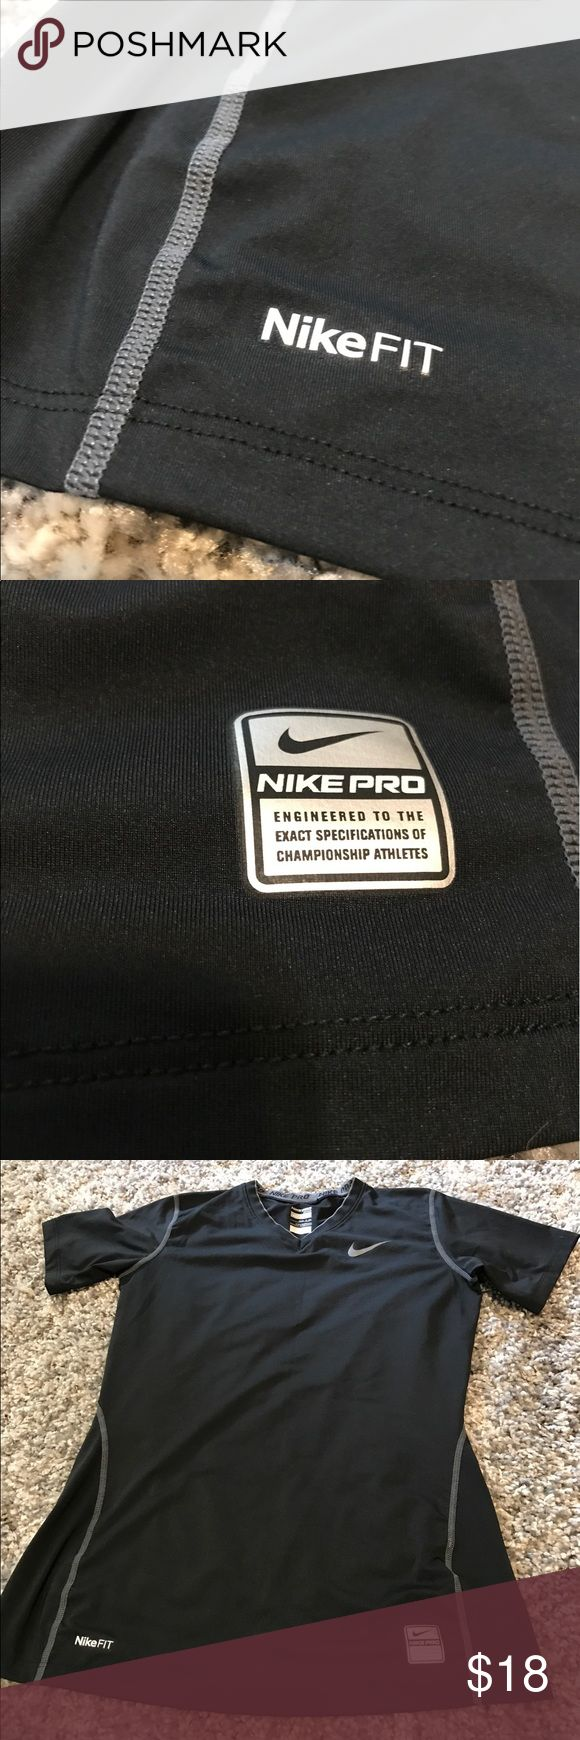 NikeFit NikePro Women's Black Top Keeps you cool while working out or on the go! I don't think I have ever even worn this top! Excellent condition! Offers accepted! Check out my other items and bundle for a discount! Nike Tops